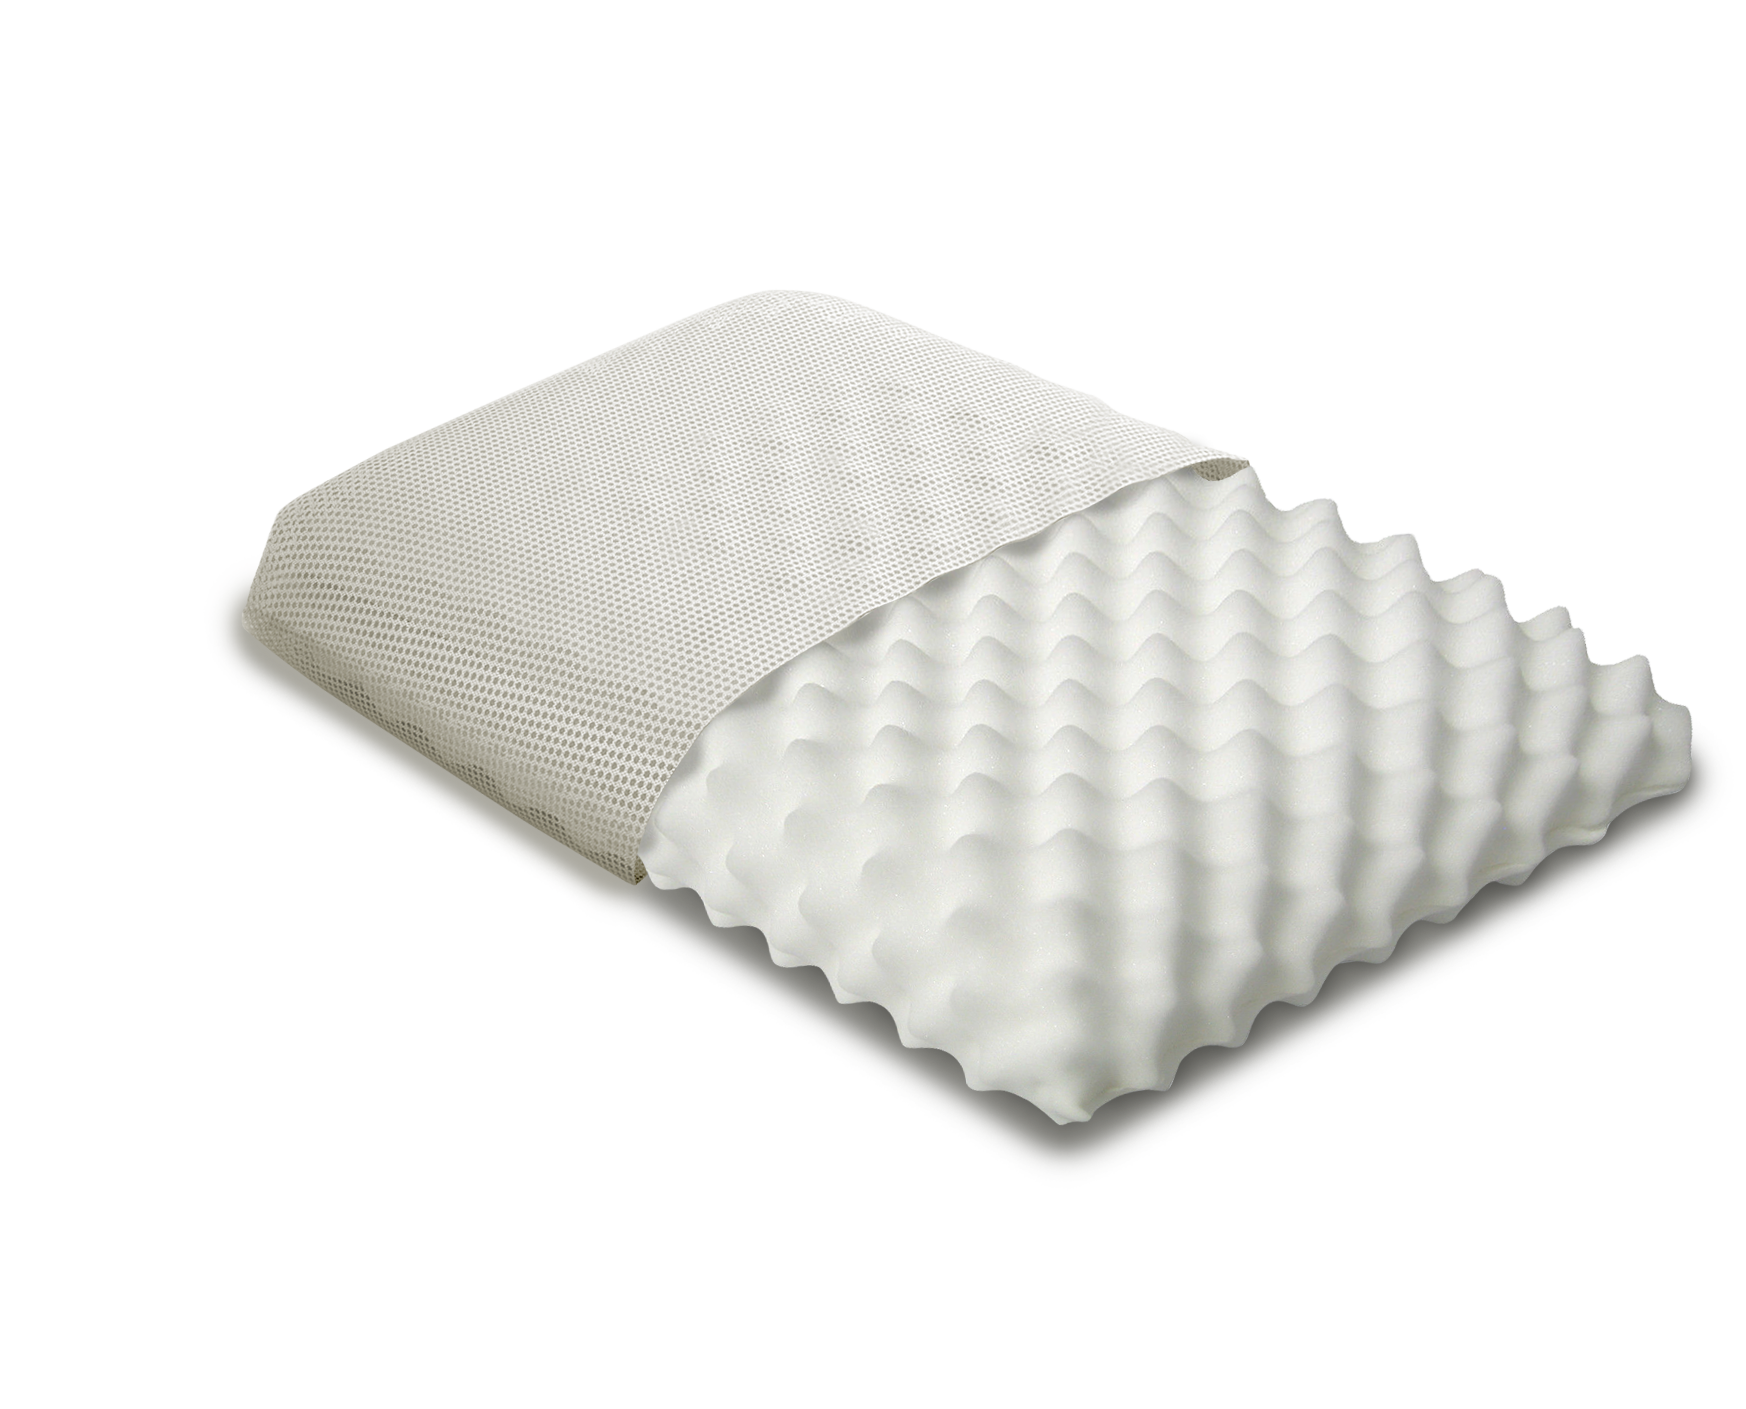 Epilepsy Anti Suffocation Pillow for